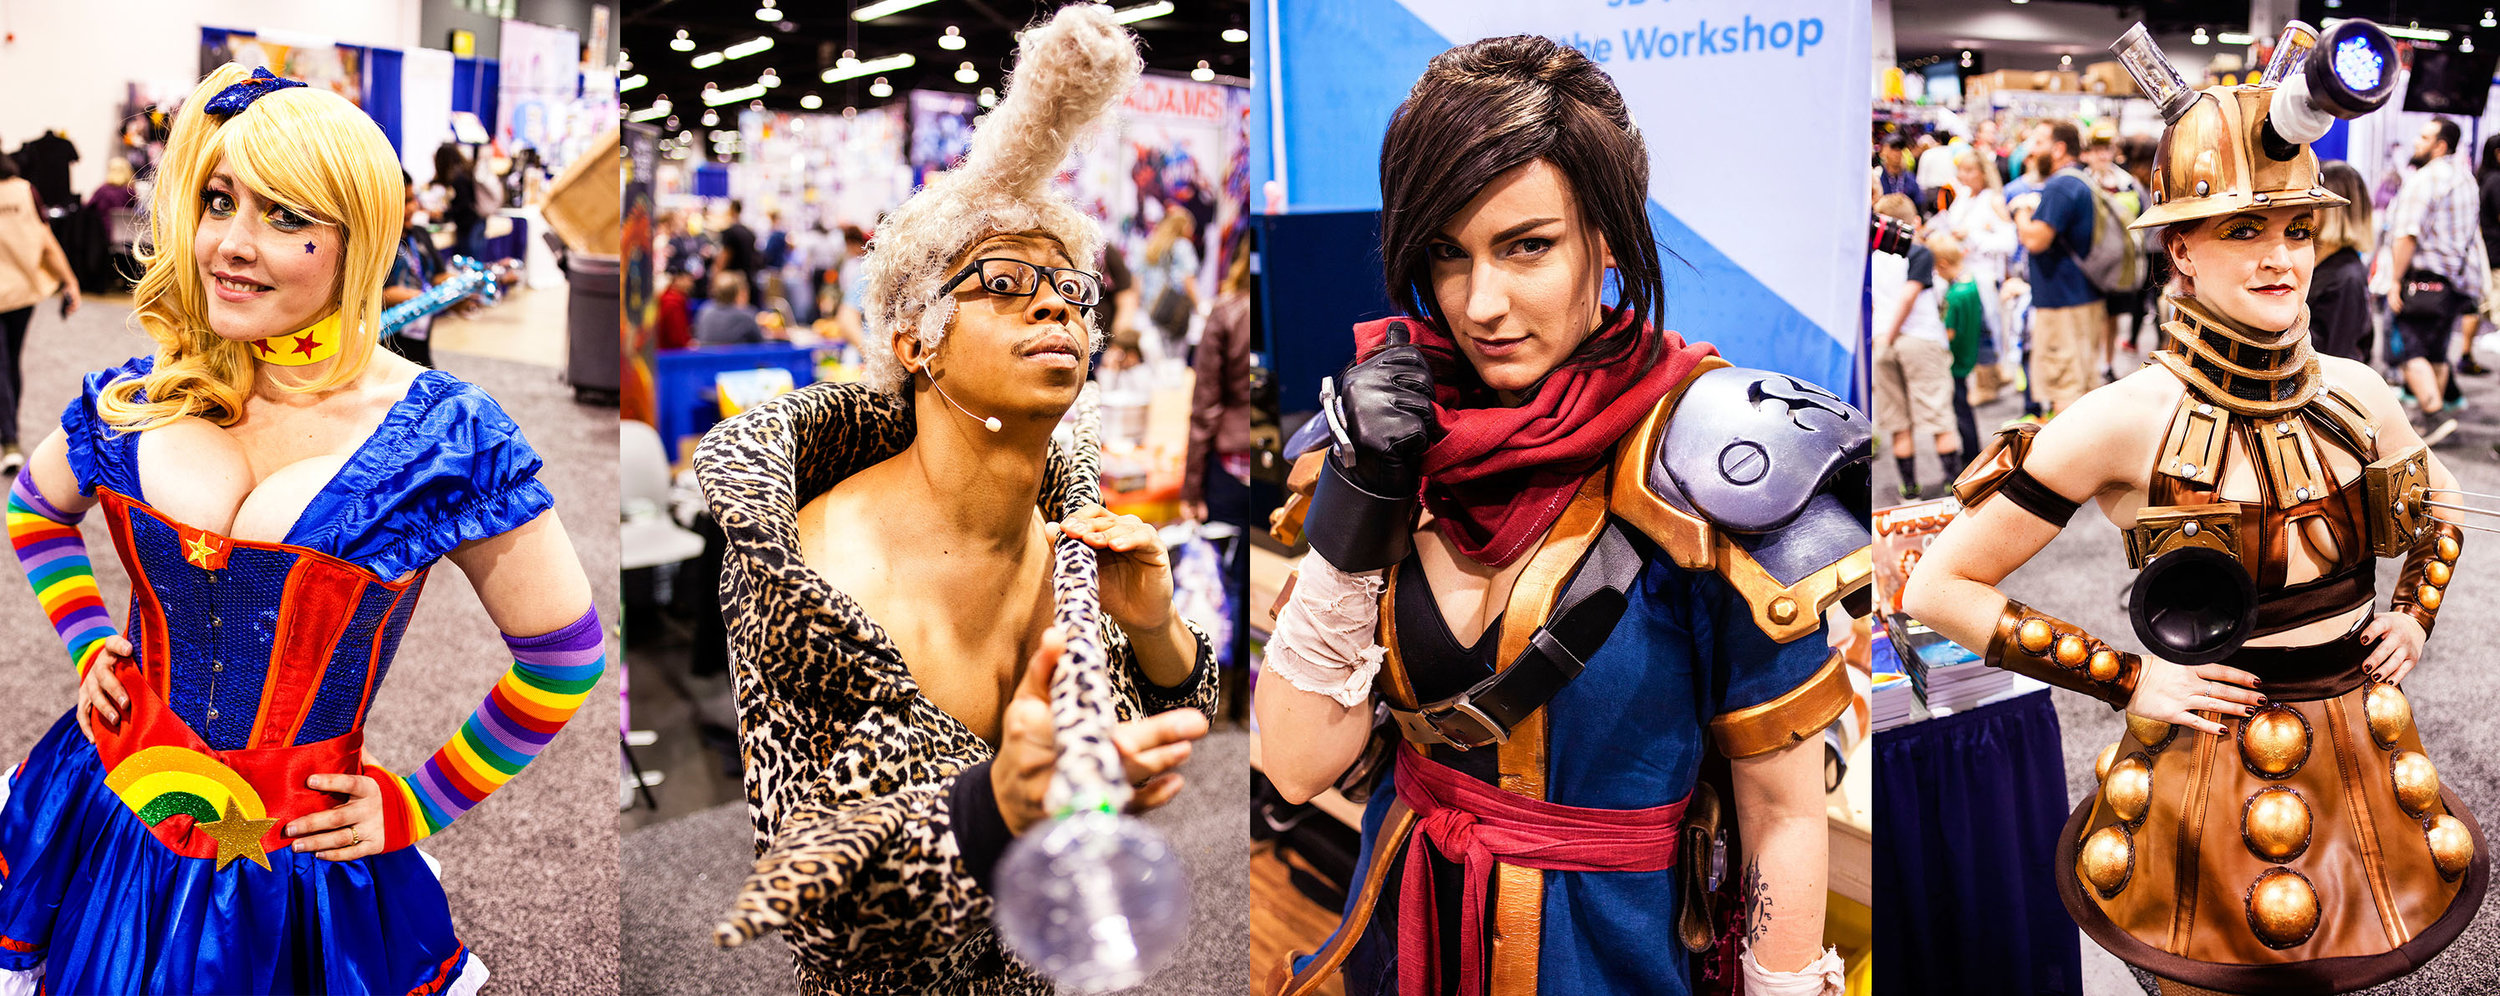 "@AlinaMasquerade as Rainbow Brite; @WindStriker007 as Ruby Rod from ""The Fifth Element""; @VertVixen as Garrison from ""Battle Chasers""; @natty.lou.creations as a stylized Dalek from ""Dr. Who"""